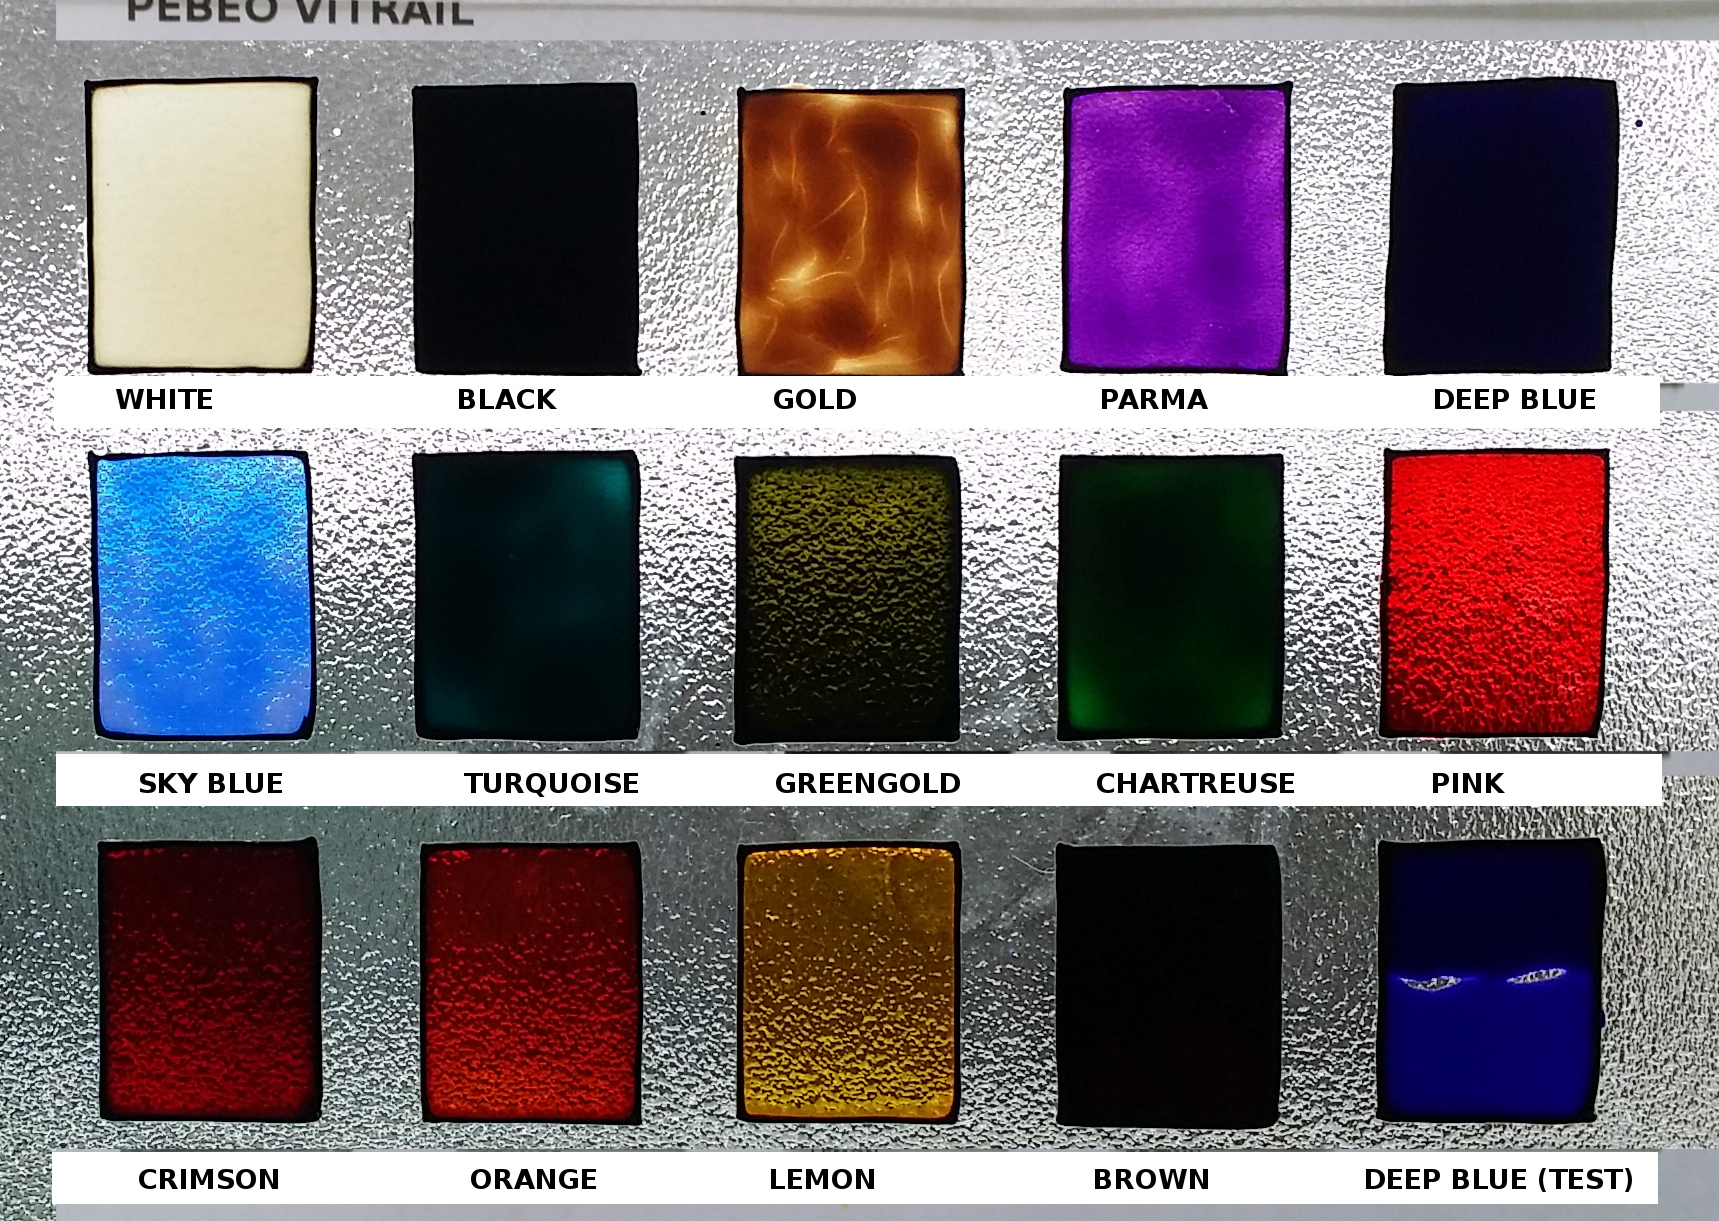 Pebeo vitrail glass paint a review glass painting for What kind of paint do you use to paint glass